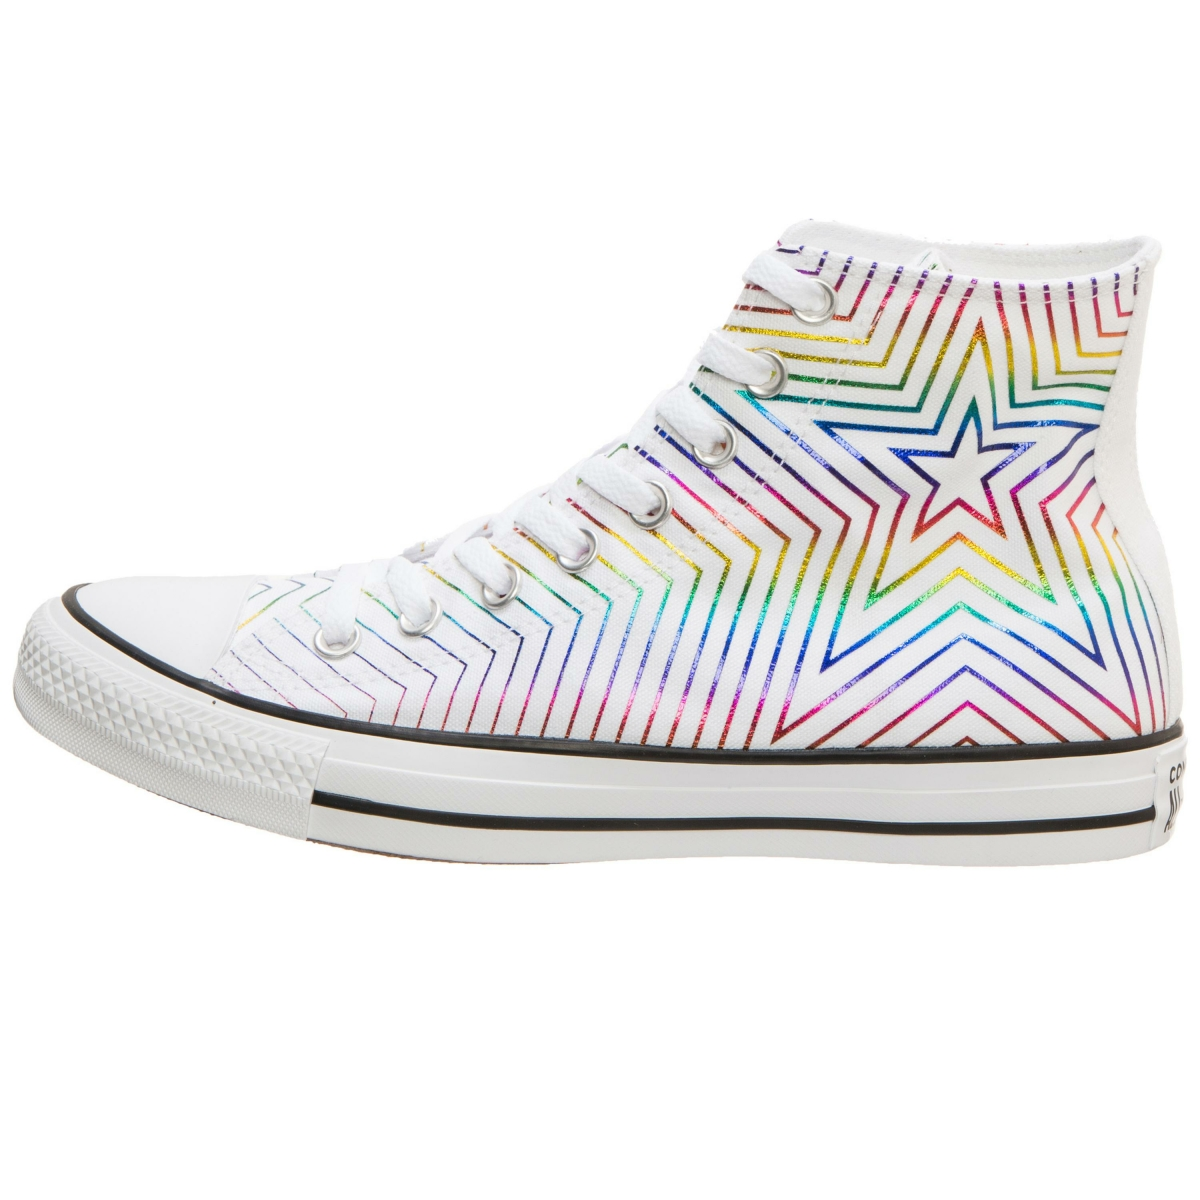 Converse Chuck Taylor All Star in bunt 565396C | everysize